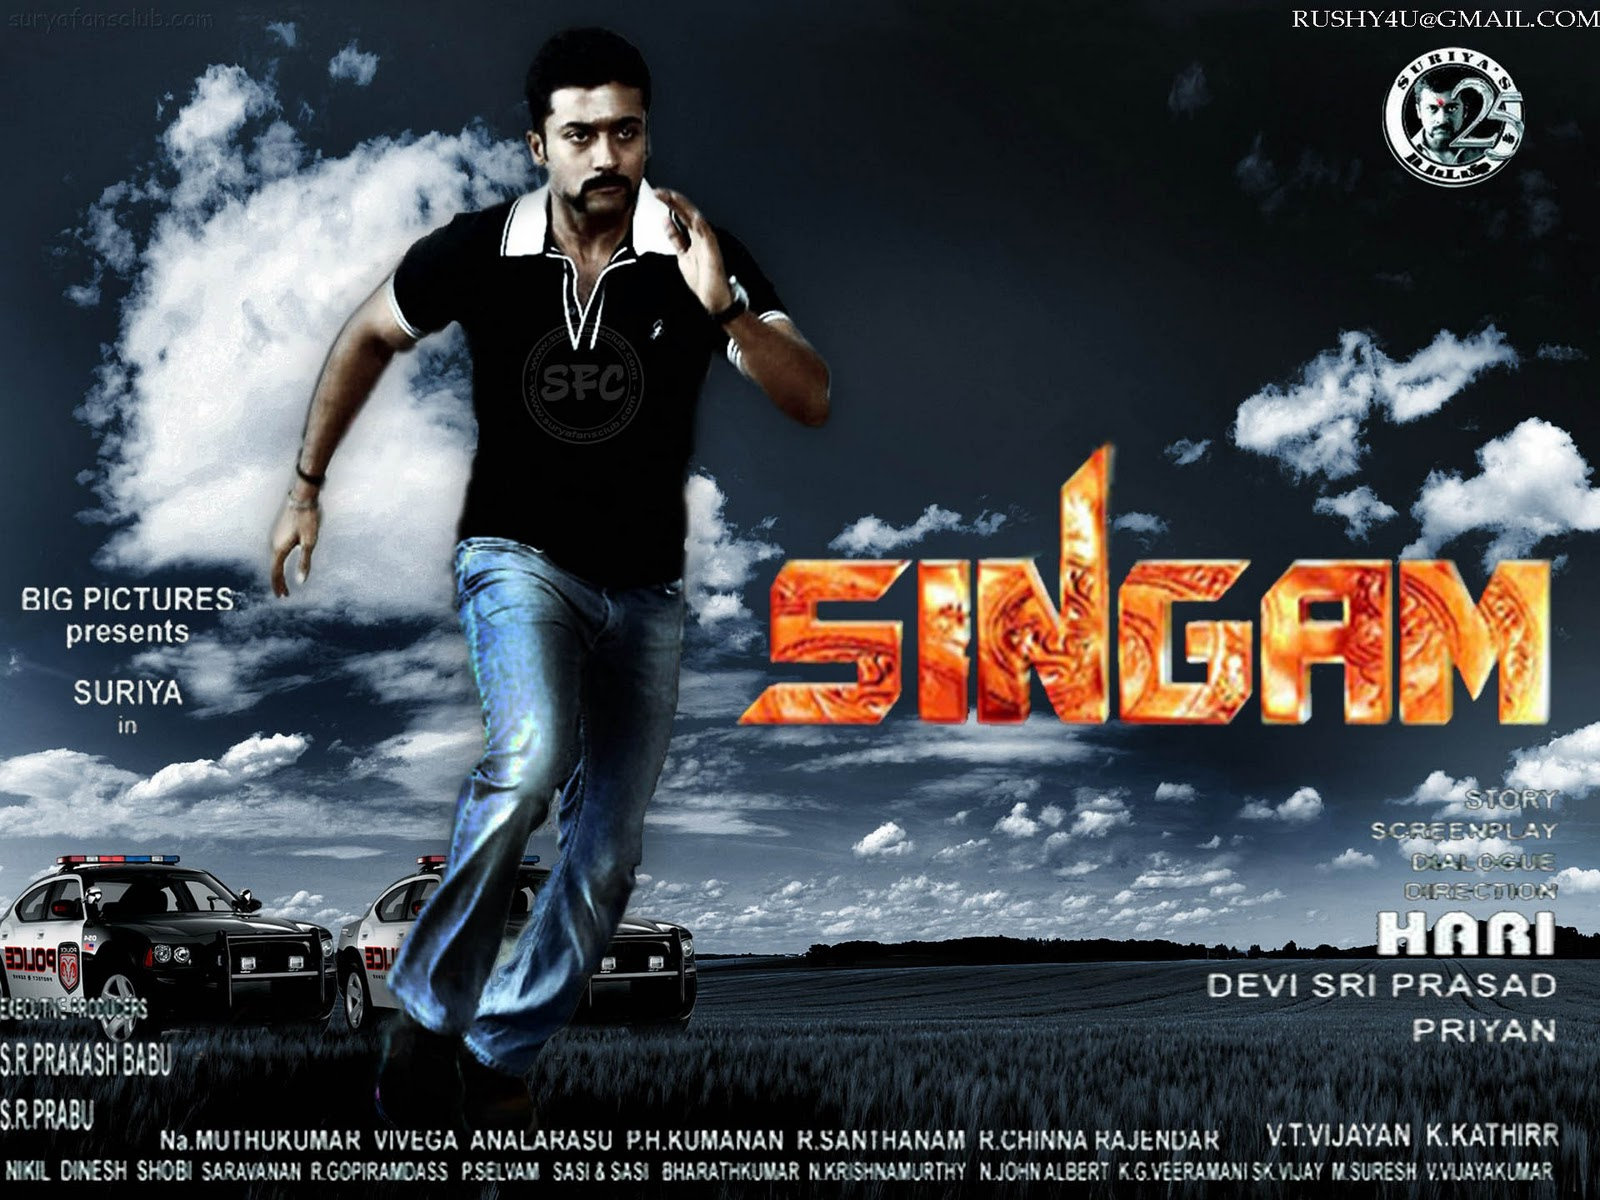 Jung hindi movie video songs free download | eninasscul.